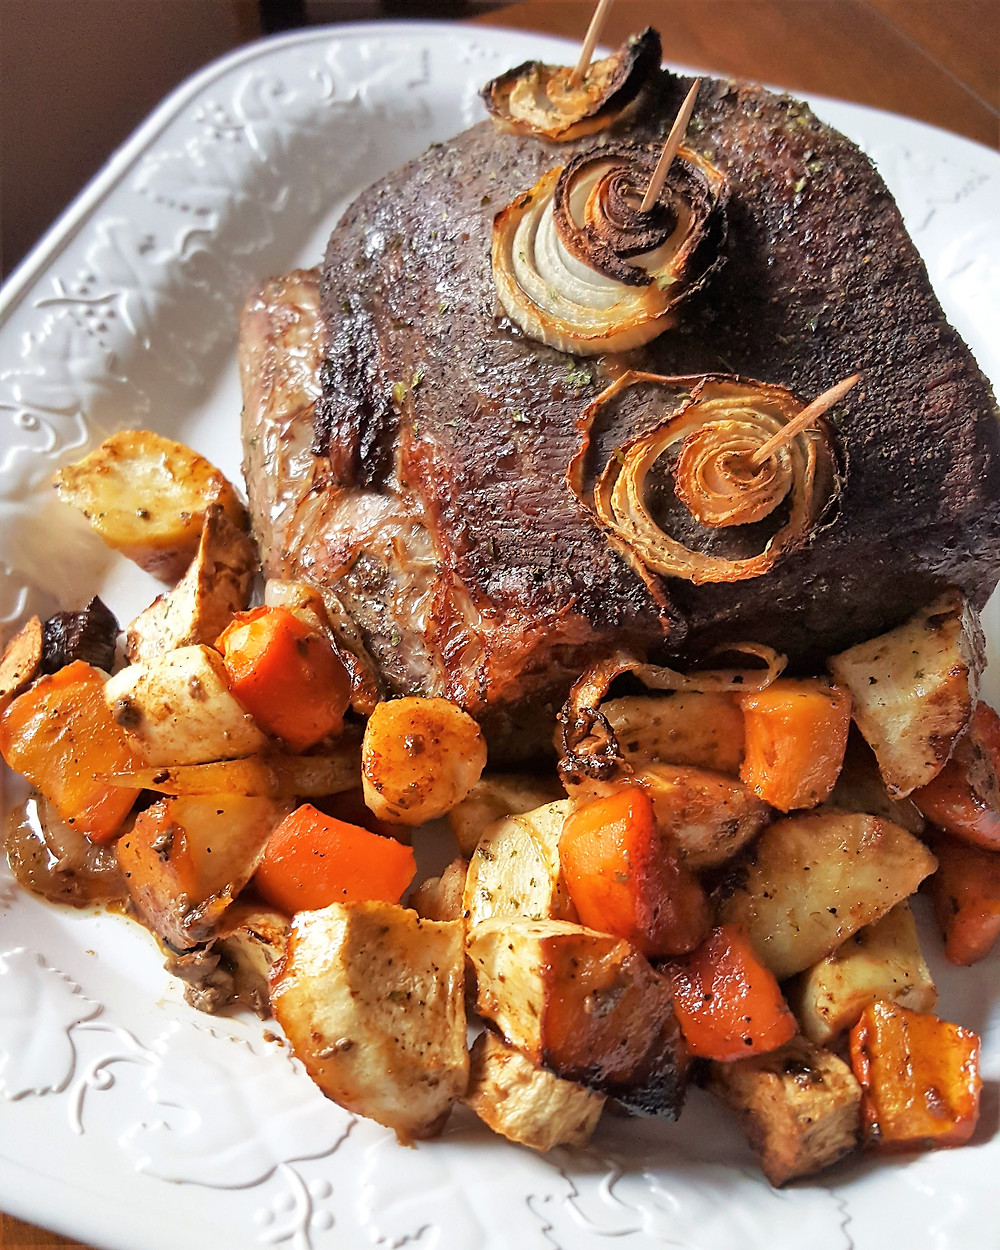 Roast Beef Dinner with Roasted Vegetables  | Low Carb